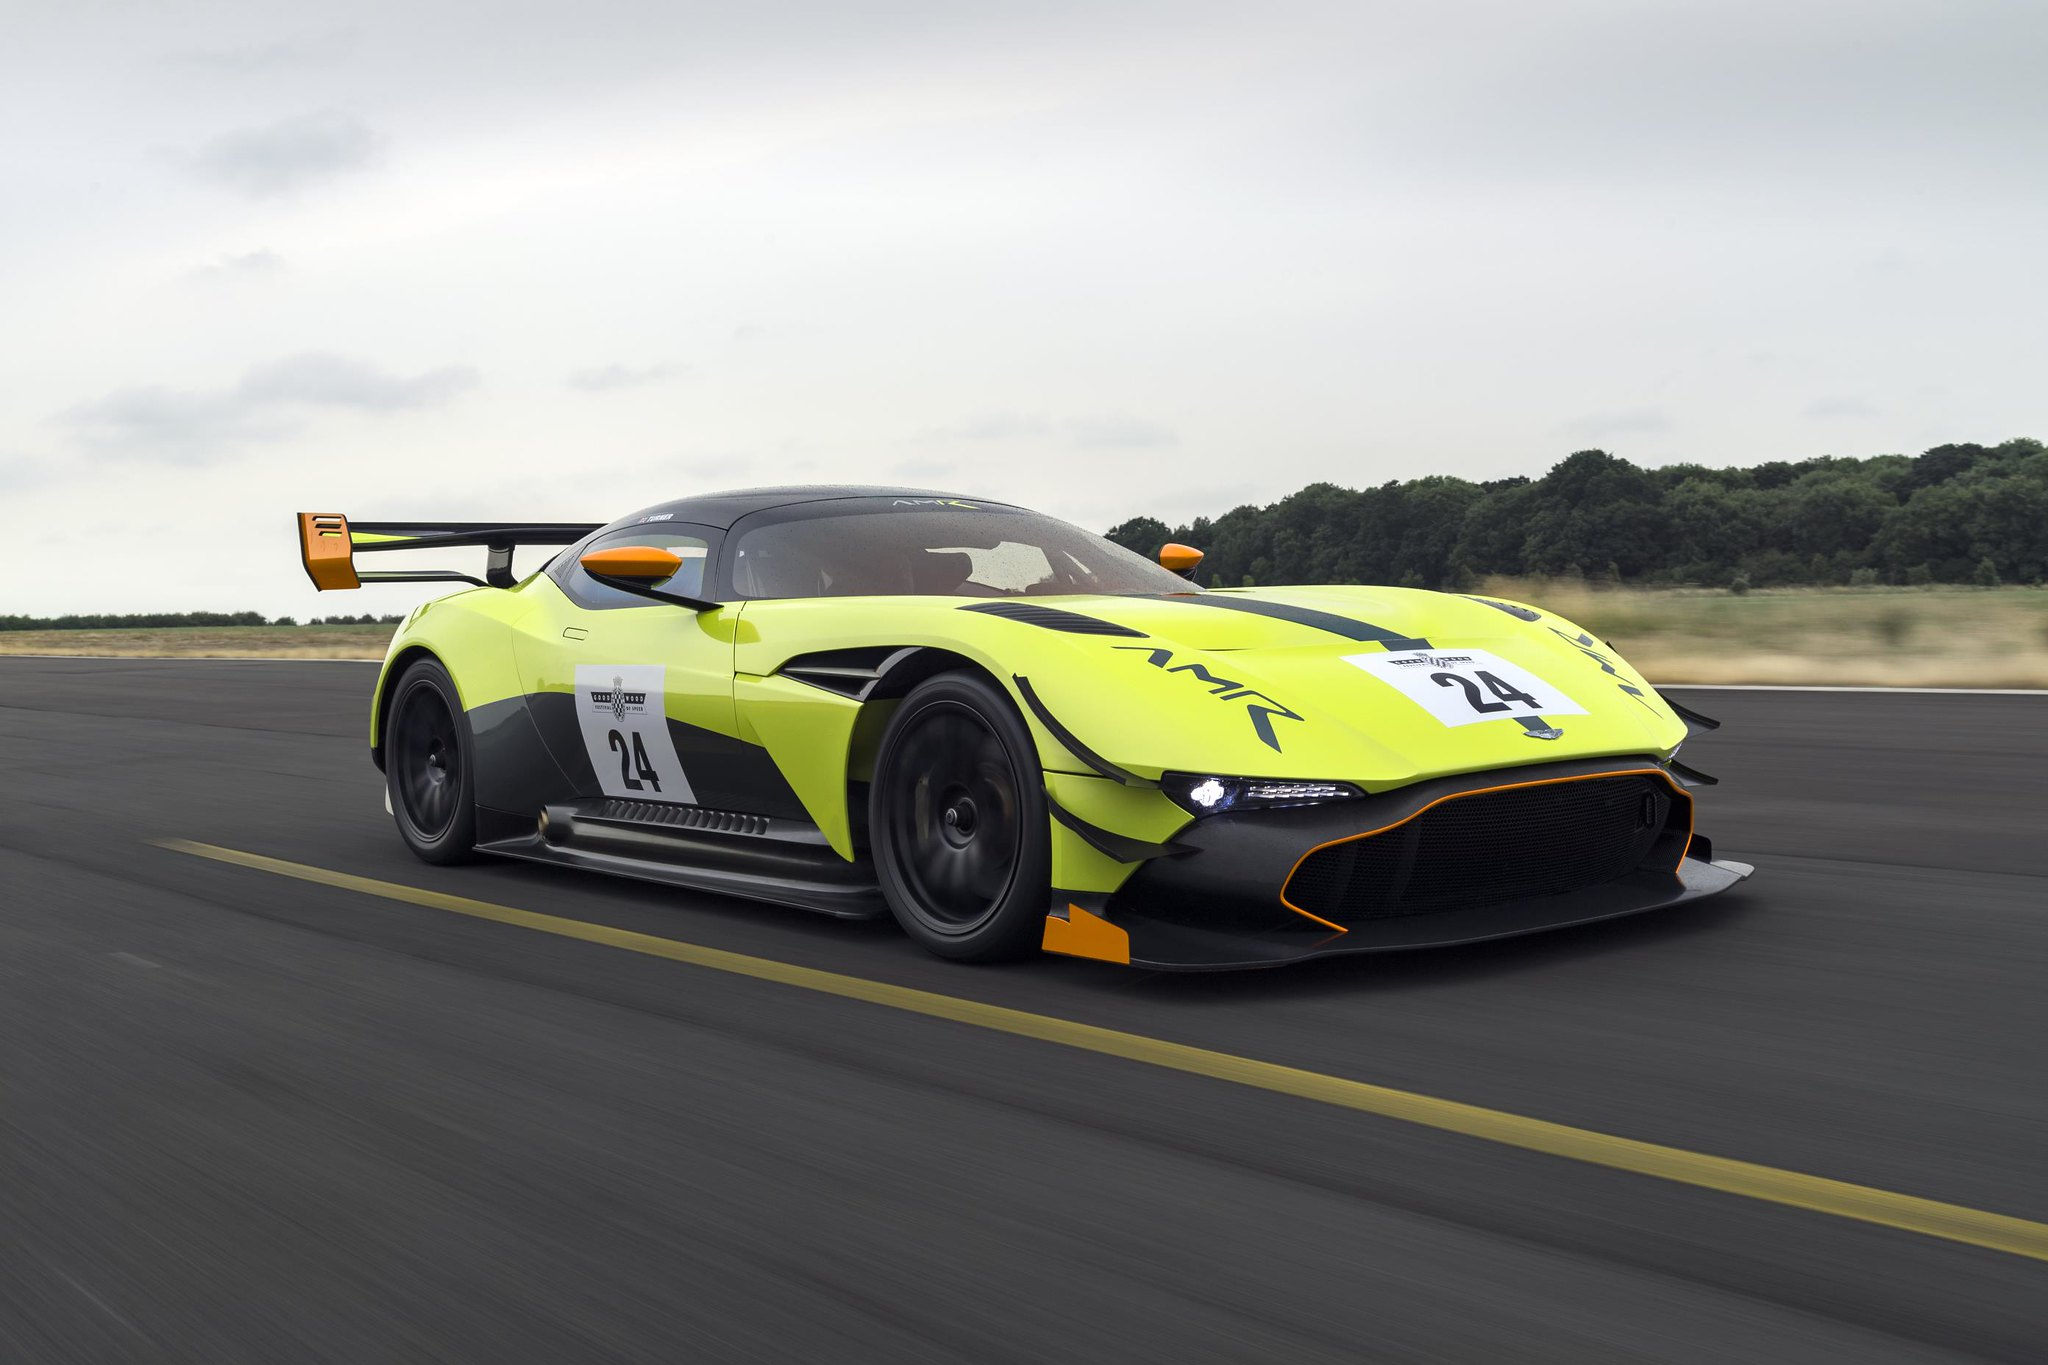 Vulcan AMR Pro – wildest-ever Aston Martin taken to new extremes